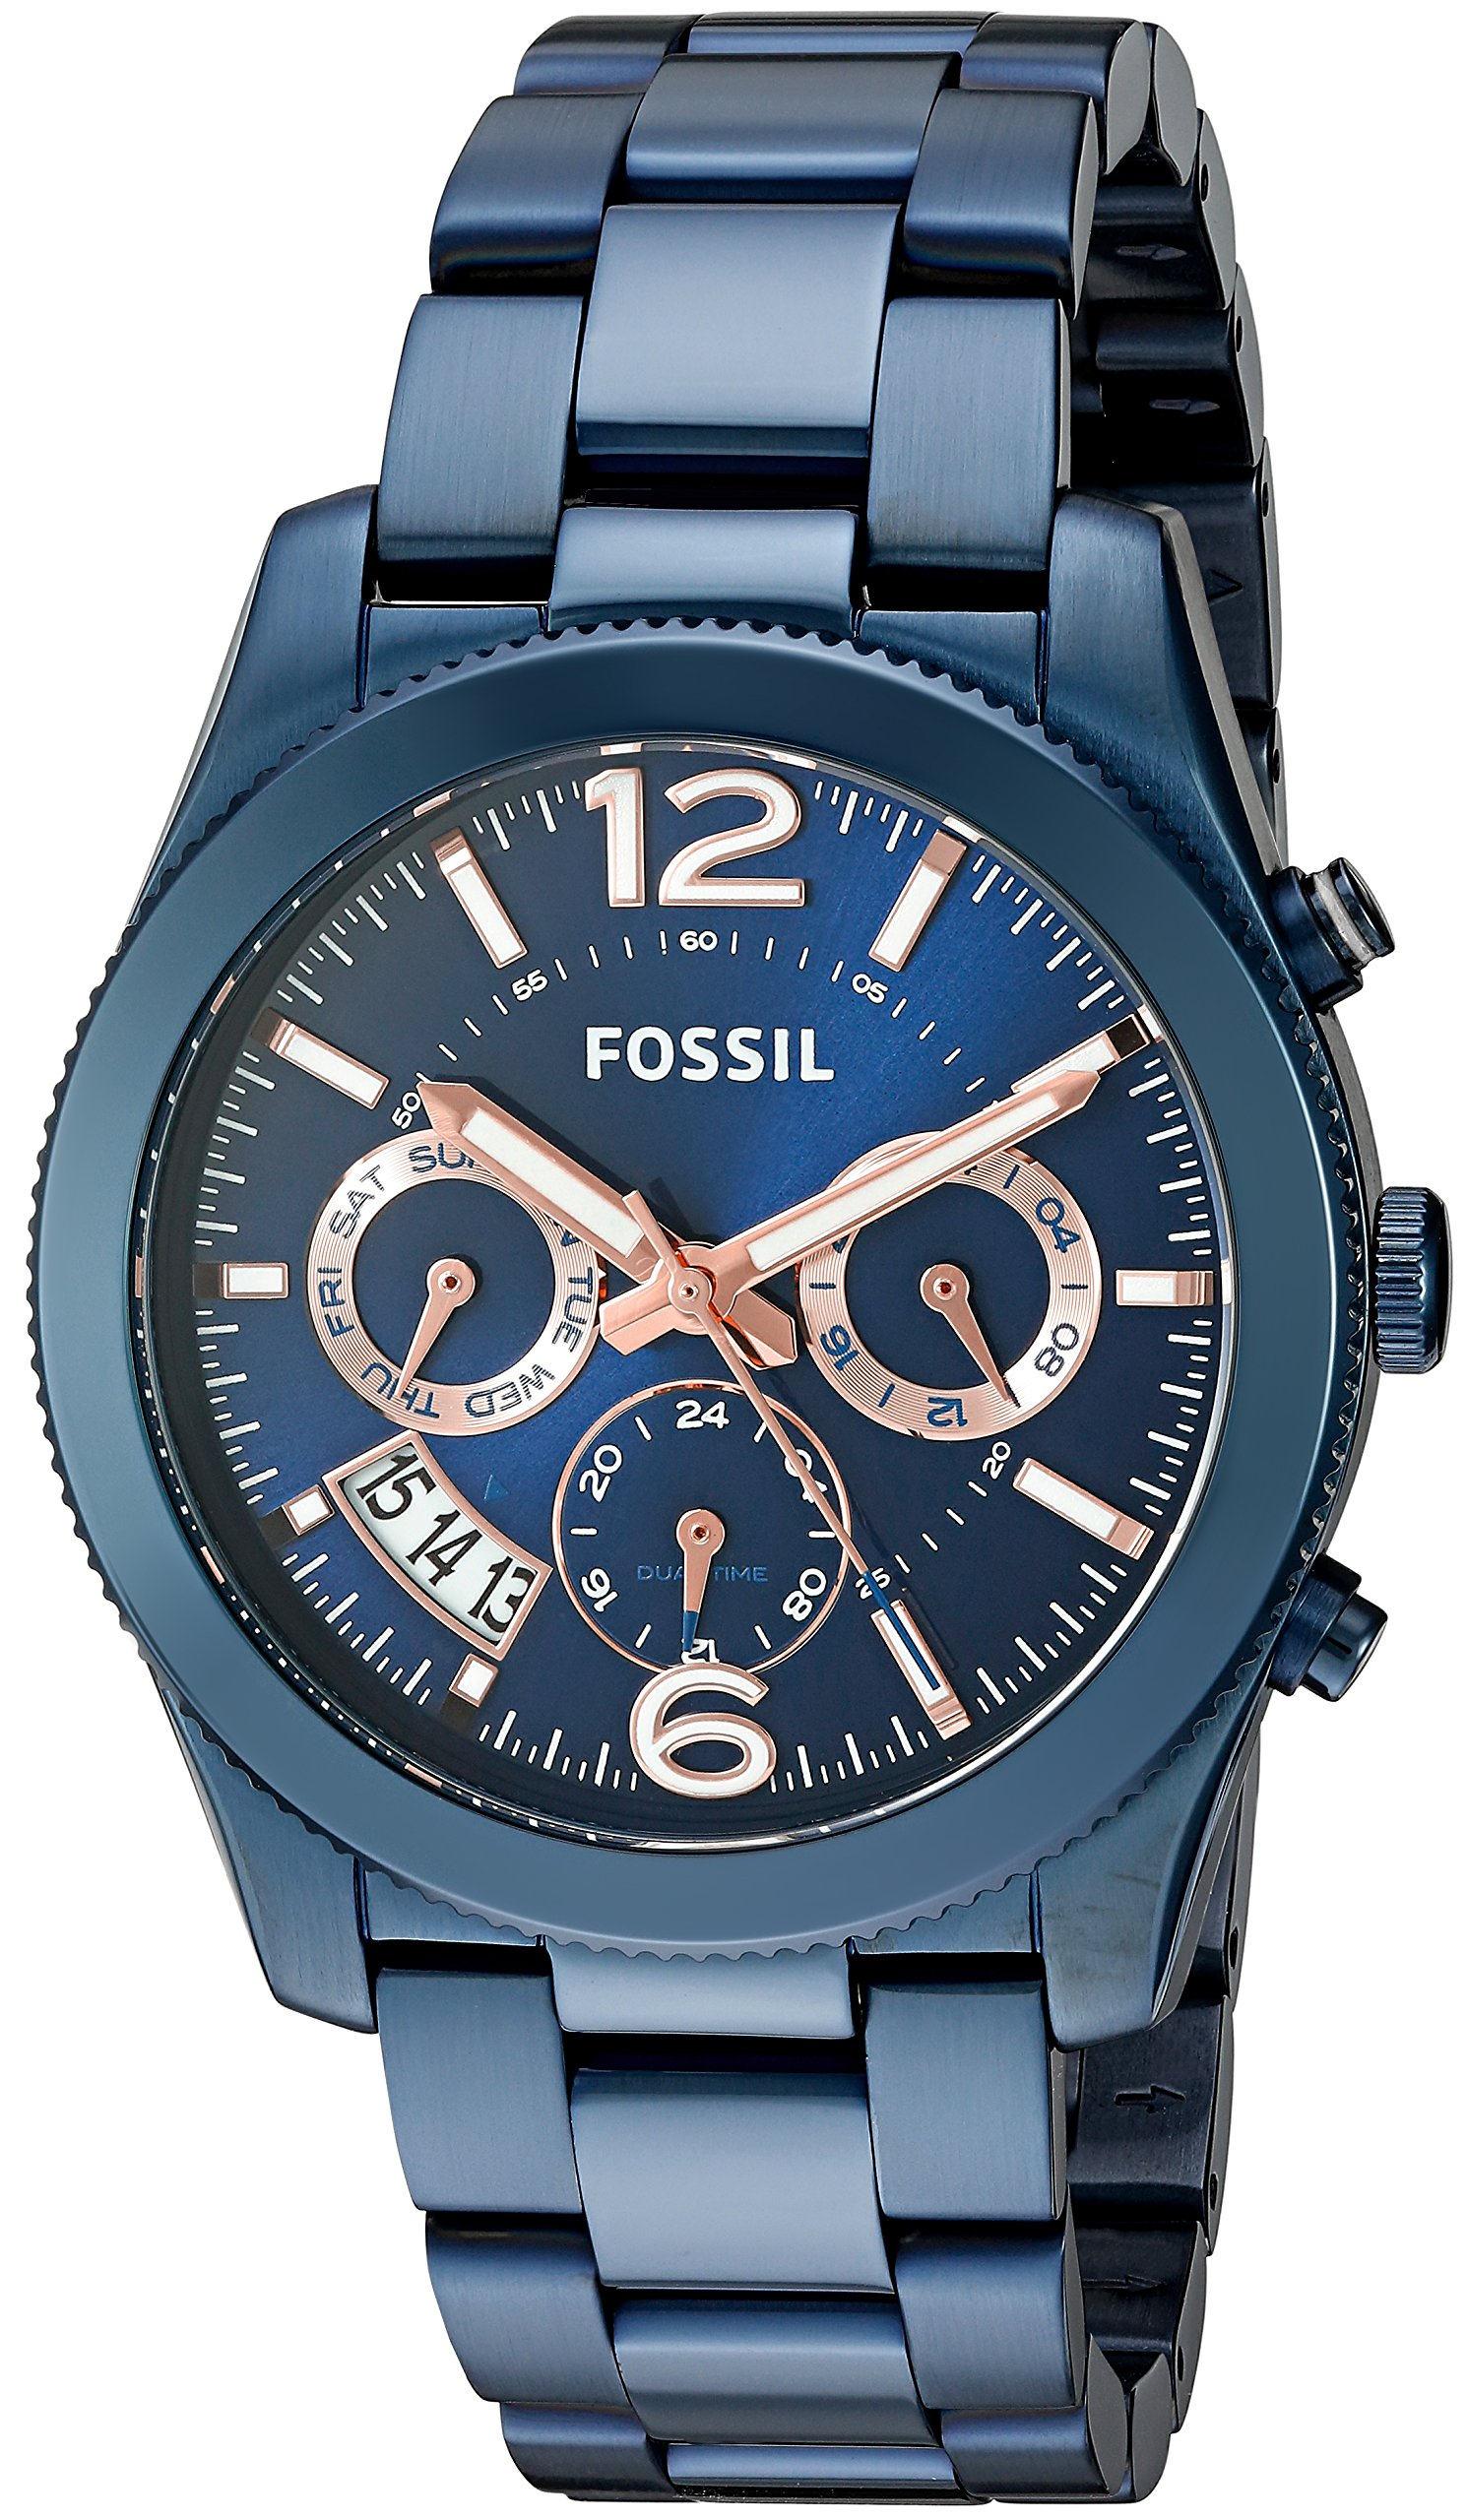 Fossil Women's Perfect Boyfriend Quartz Stainless Steel Chronograph Watch, Color: Blue (Model: ES4093) by Fossil